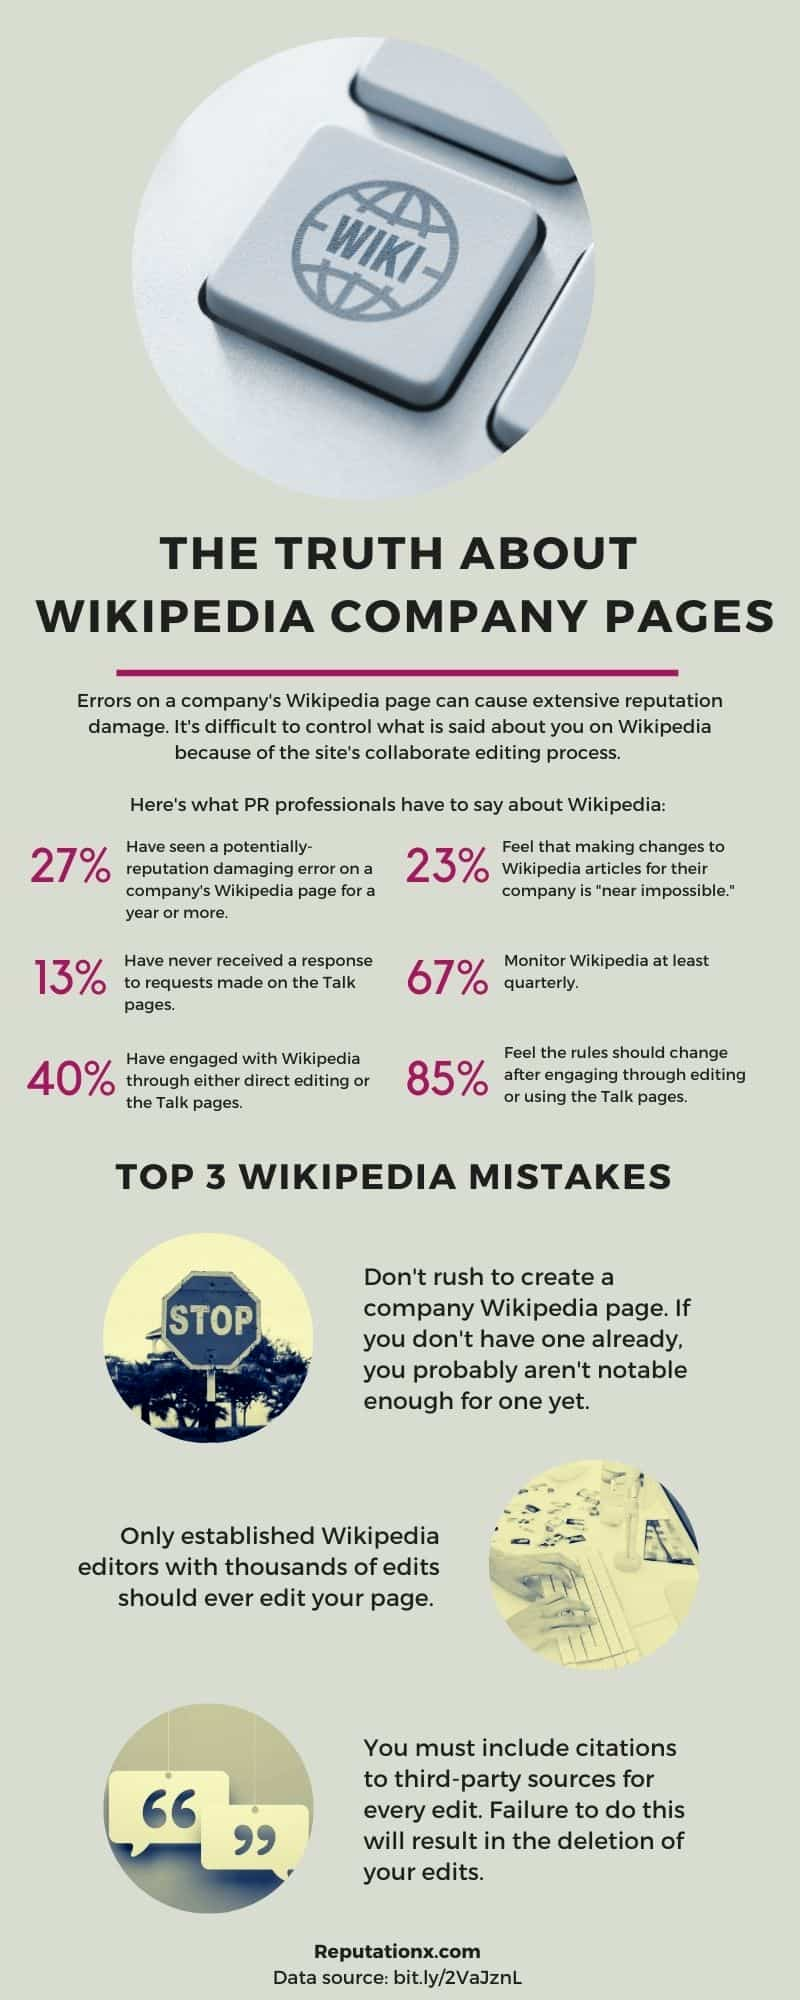 The truth about Wikipedia company pages